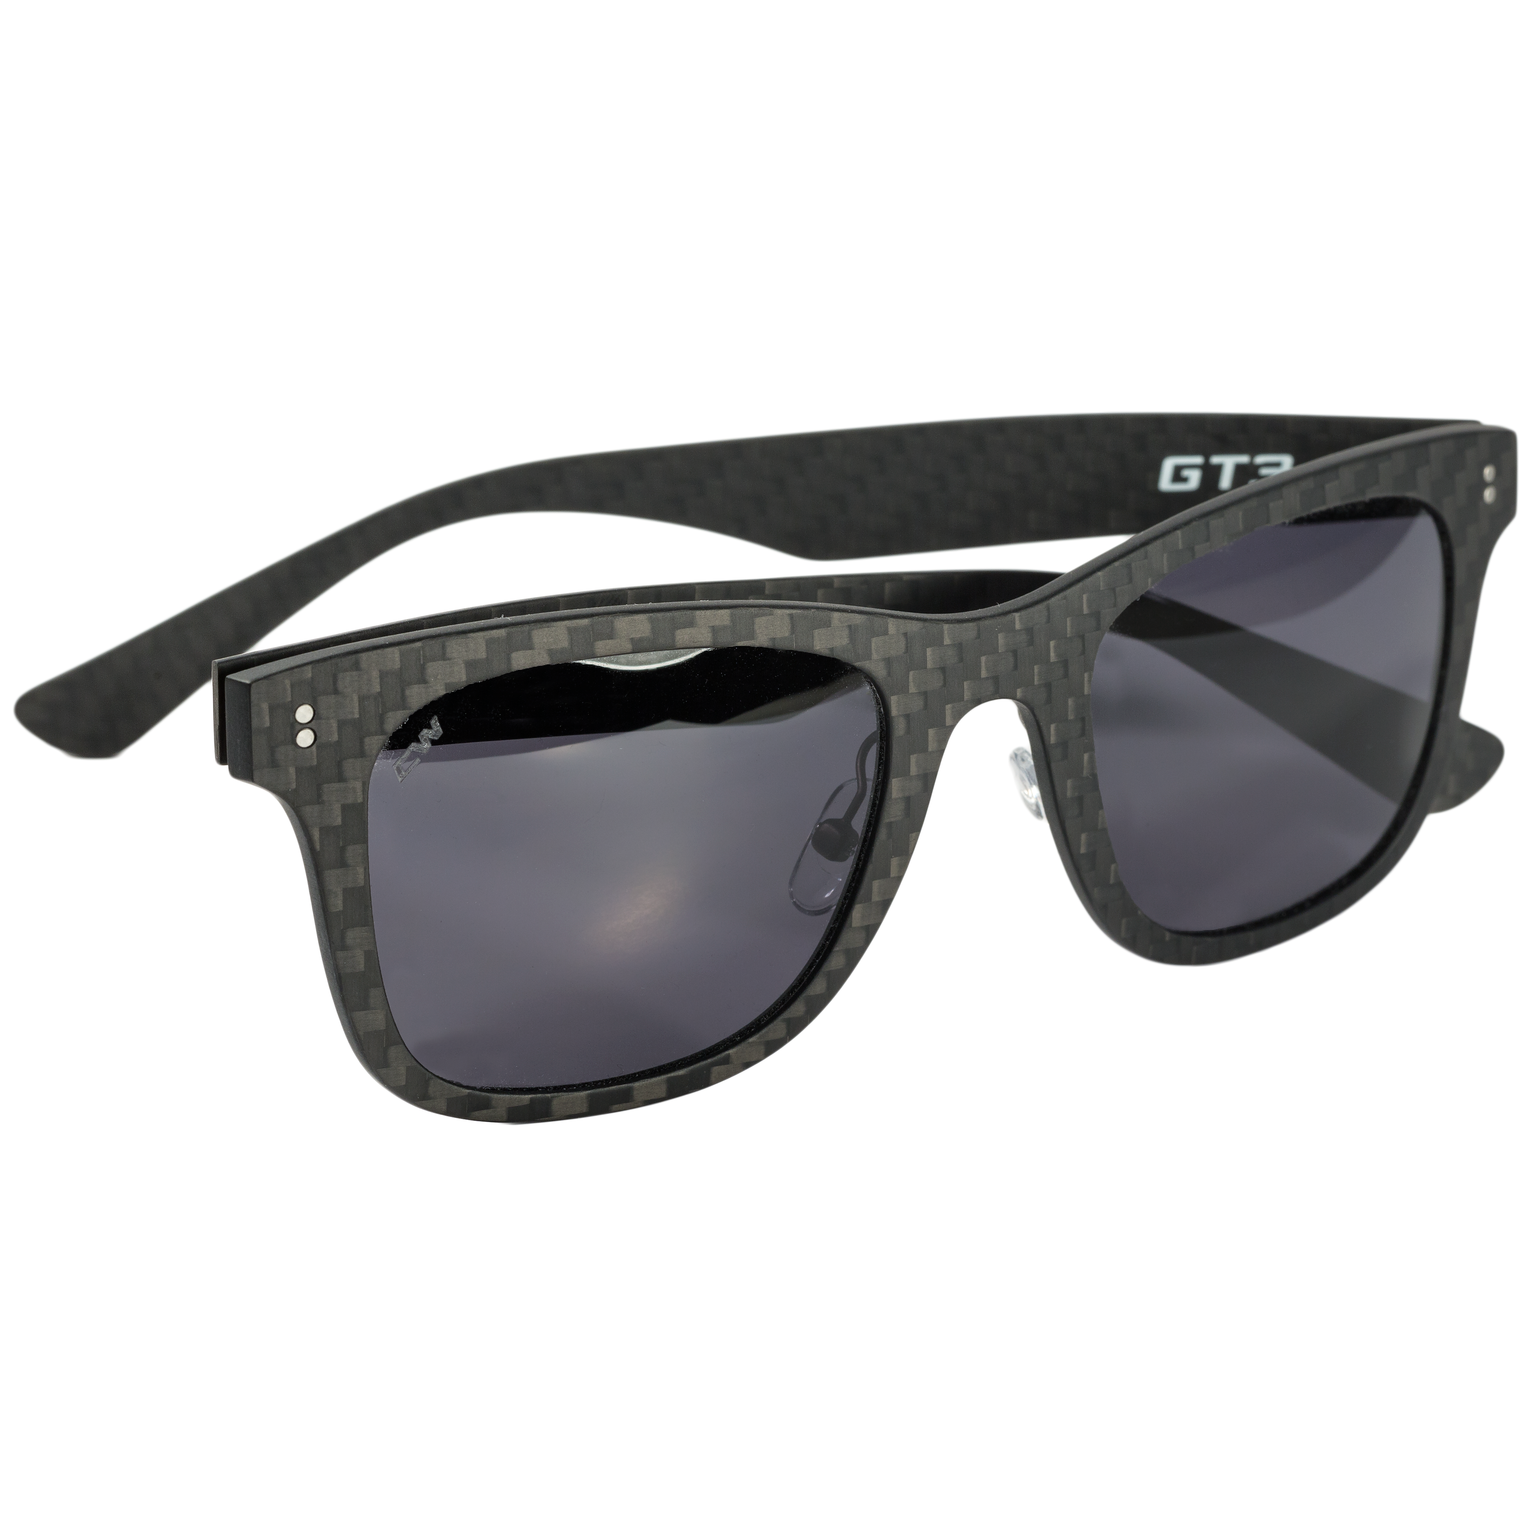 907dff6485 CarbonWurks Custom Carbon FibreGT3 sunglasses Midnight Black ...